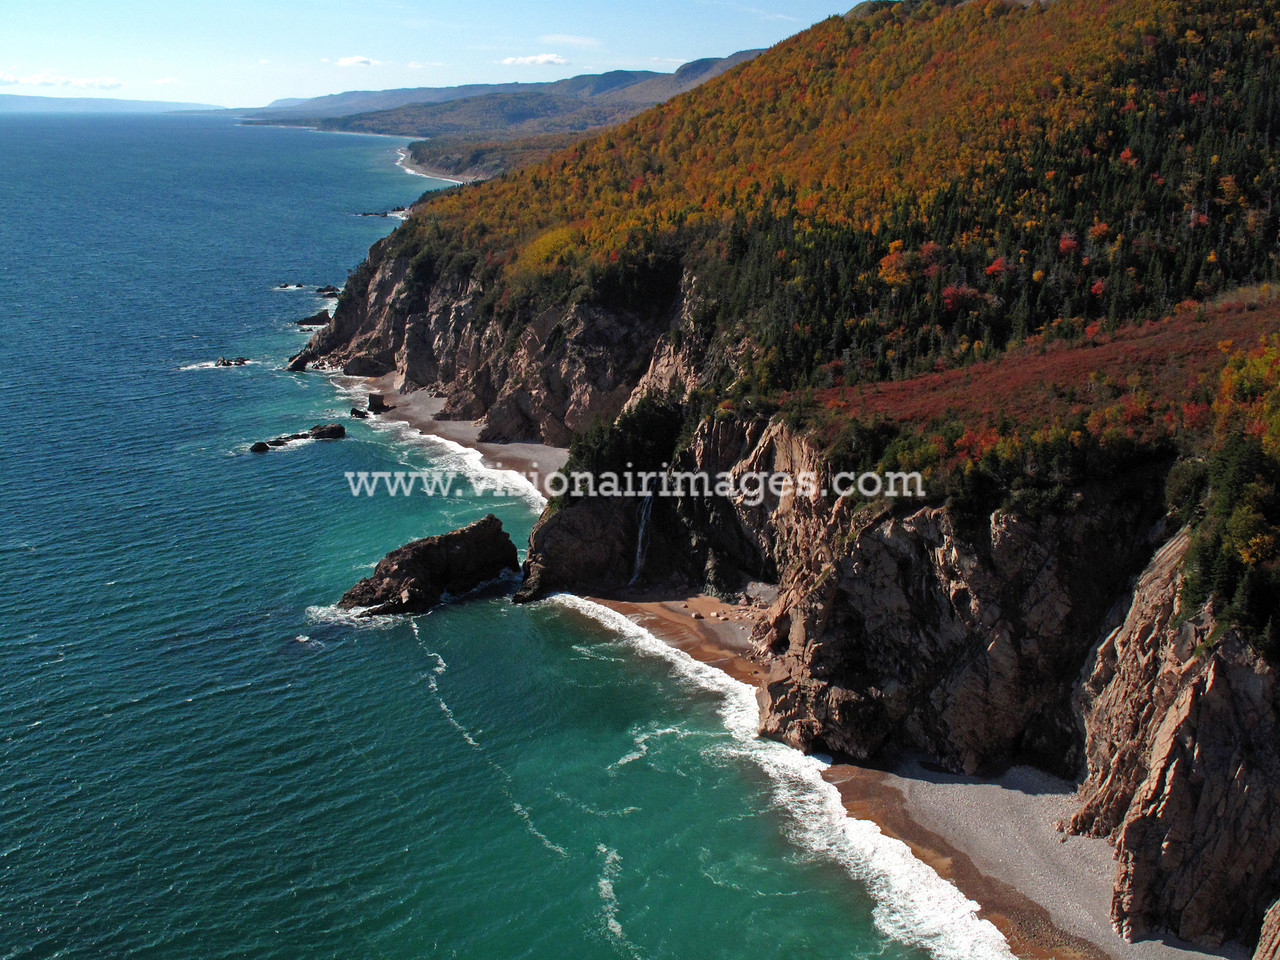 Cape Smokey, Aerial Image, Cliffs, Cape Breton, Nova Scotia, Canada